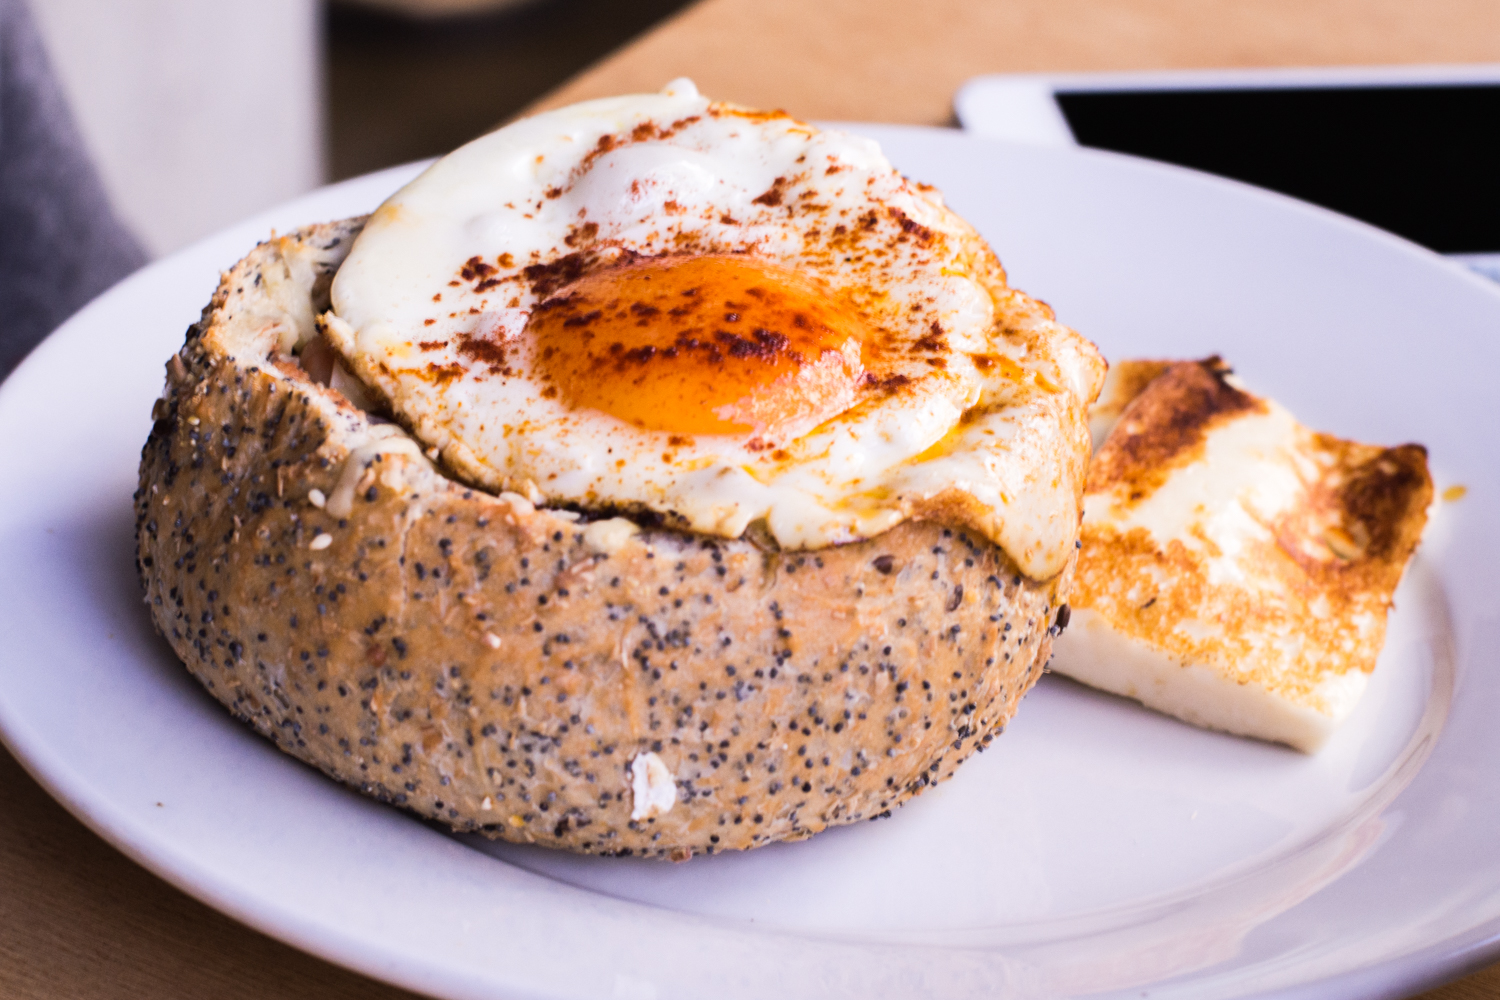 Oven baked beans in roll: served in a seeded roll with grated parmesan cheese, avocado and a fried egg - $15.00